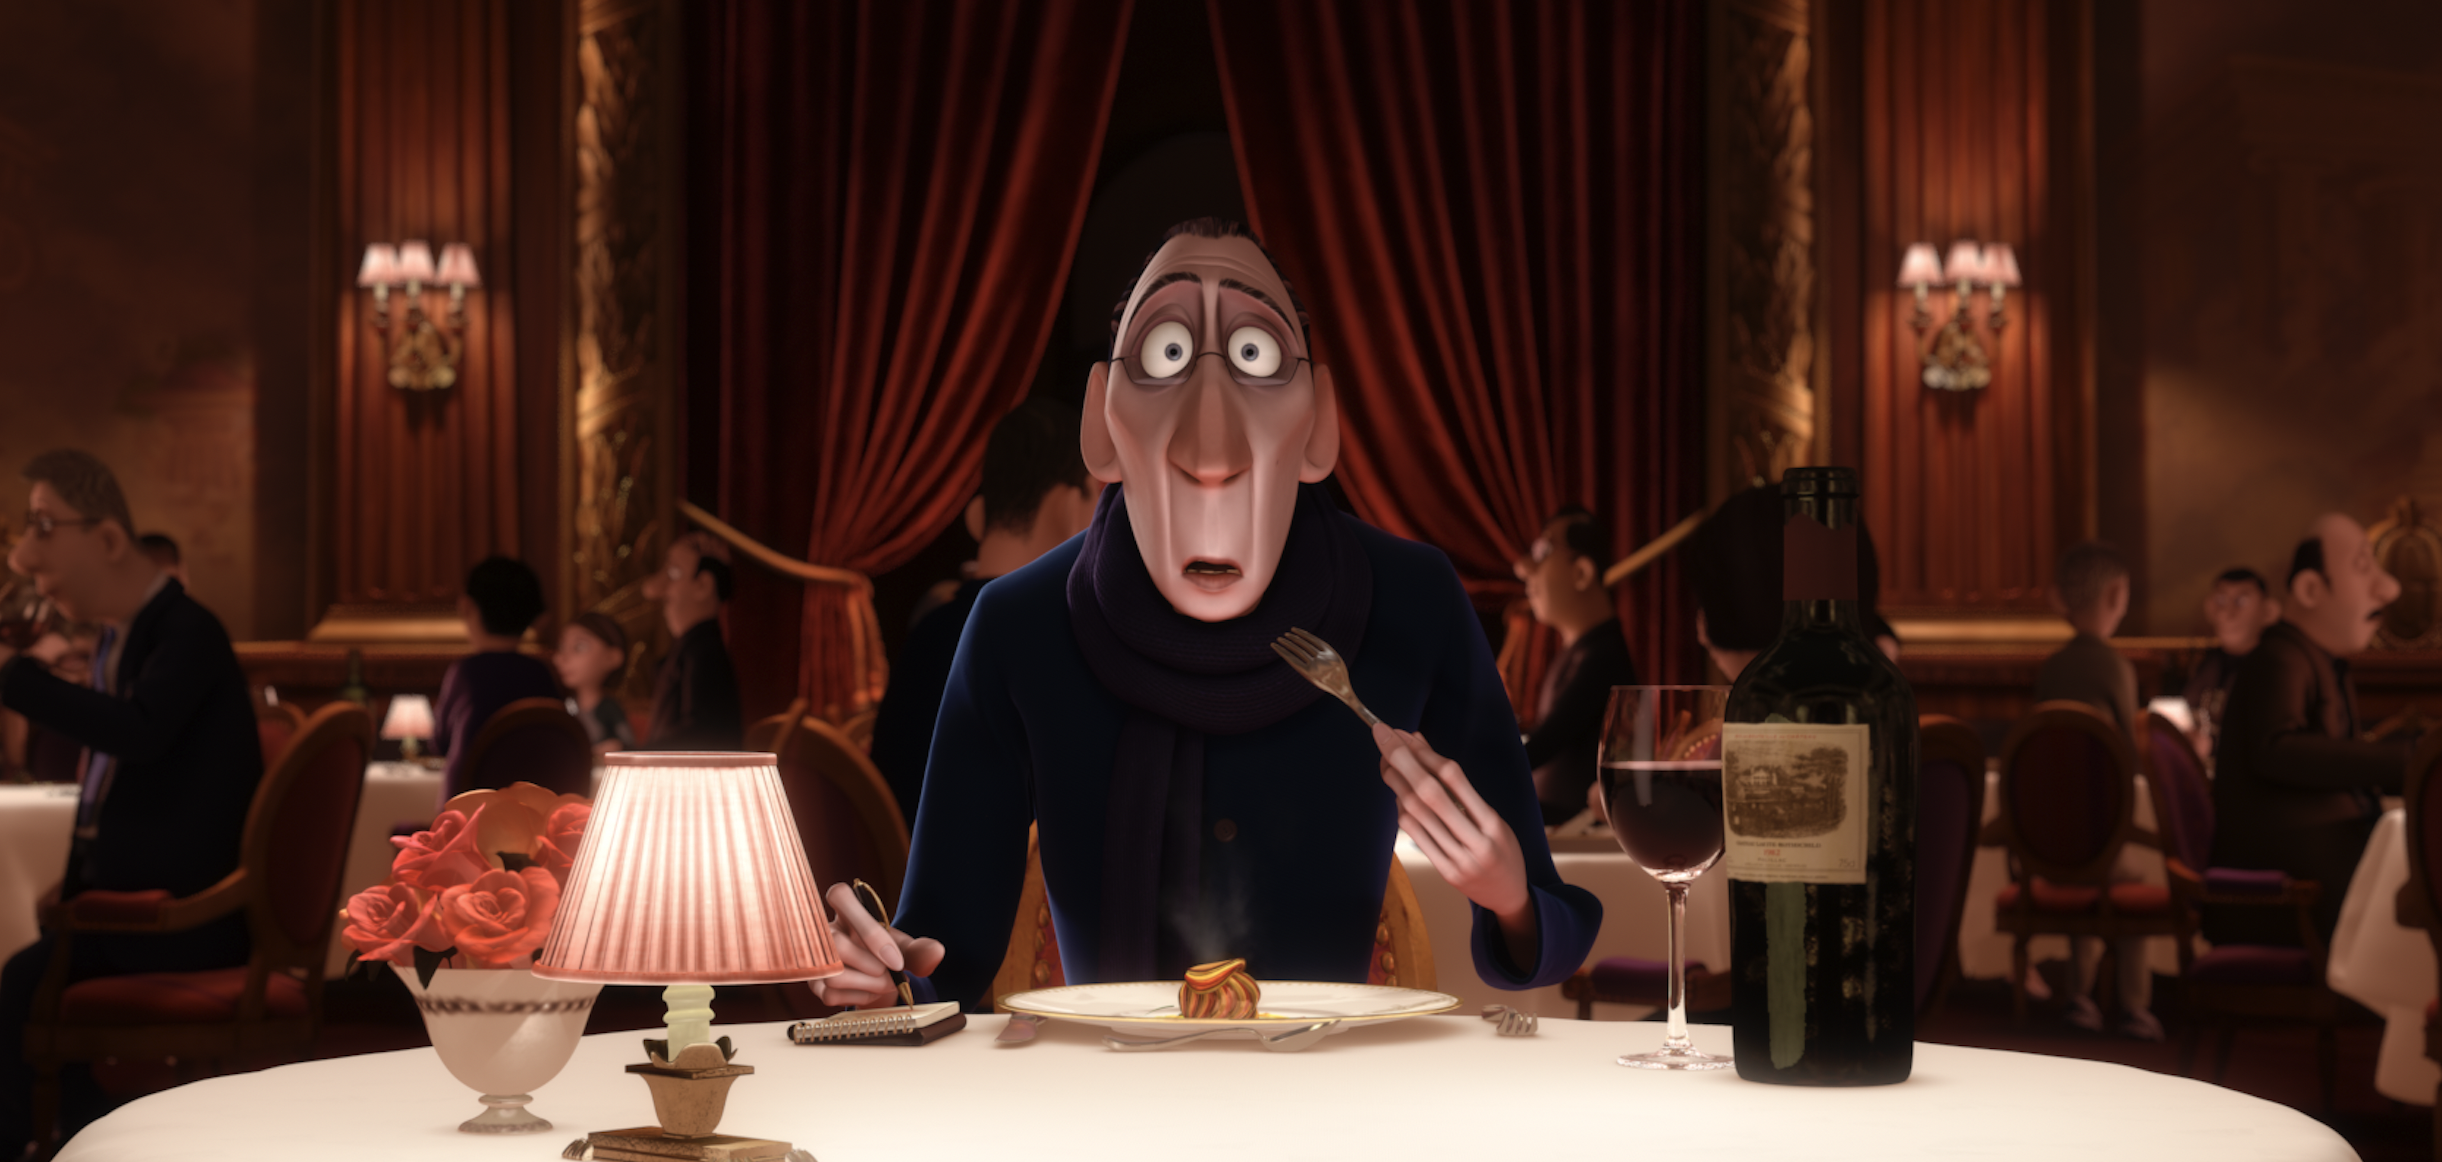 The shocked animated character of Anton Ego holds a fork mid-bite, mouth agape, while seated at a tablecloth-covered table in a formal, red-draped dining room.